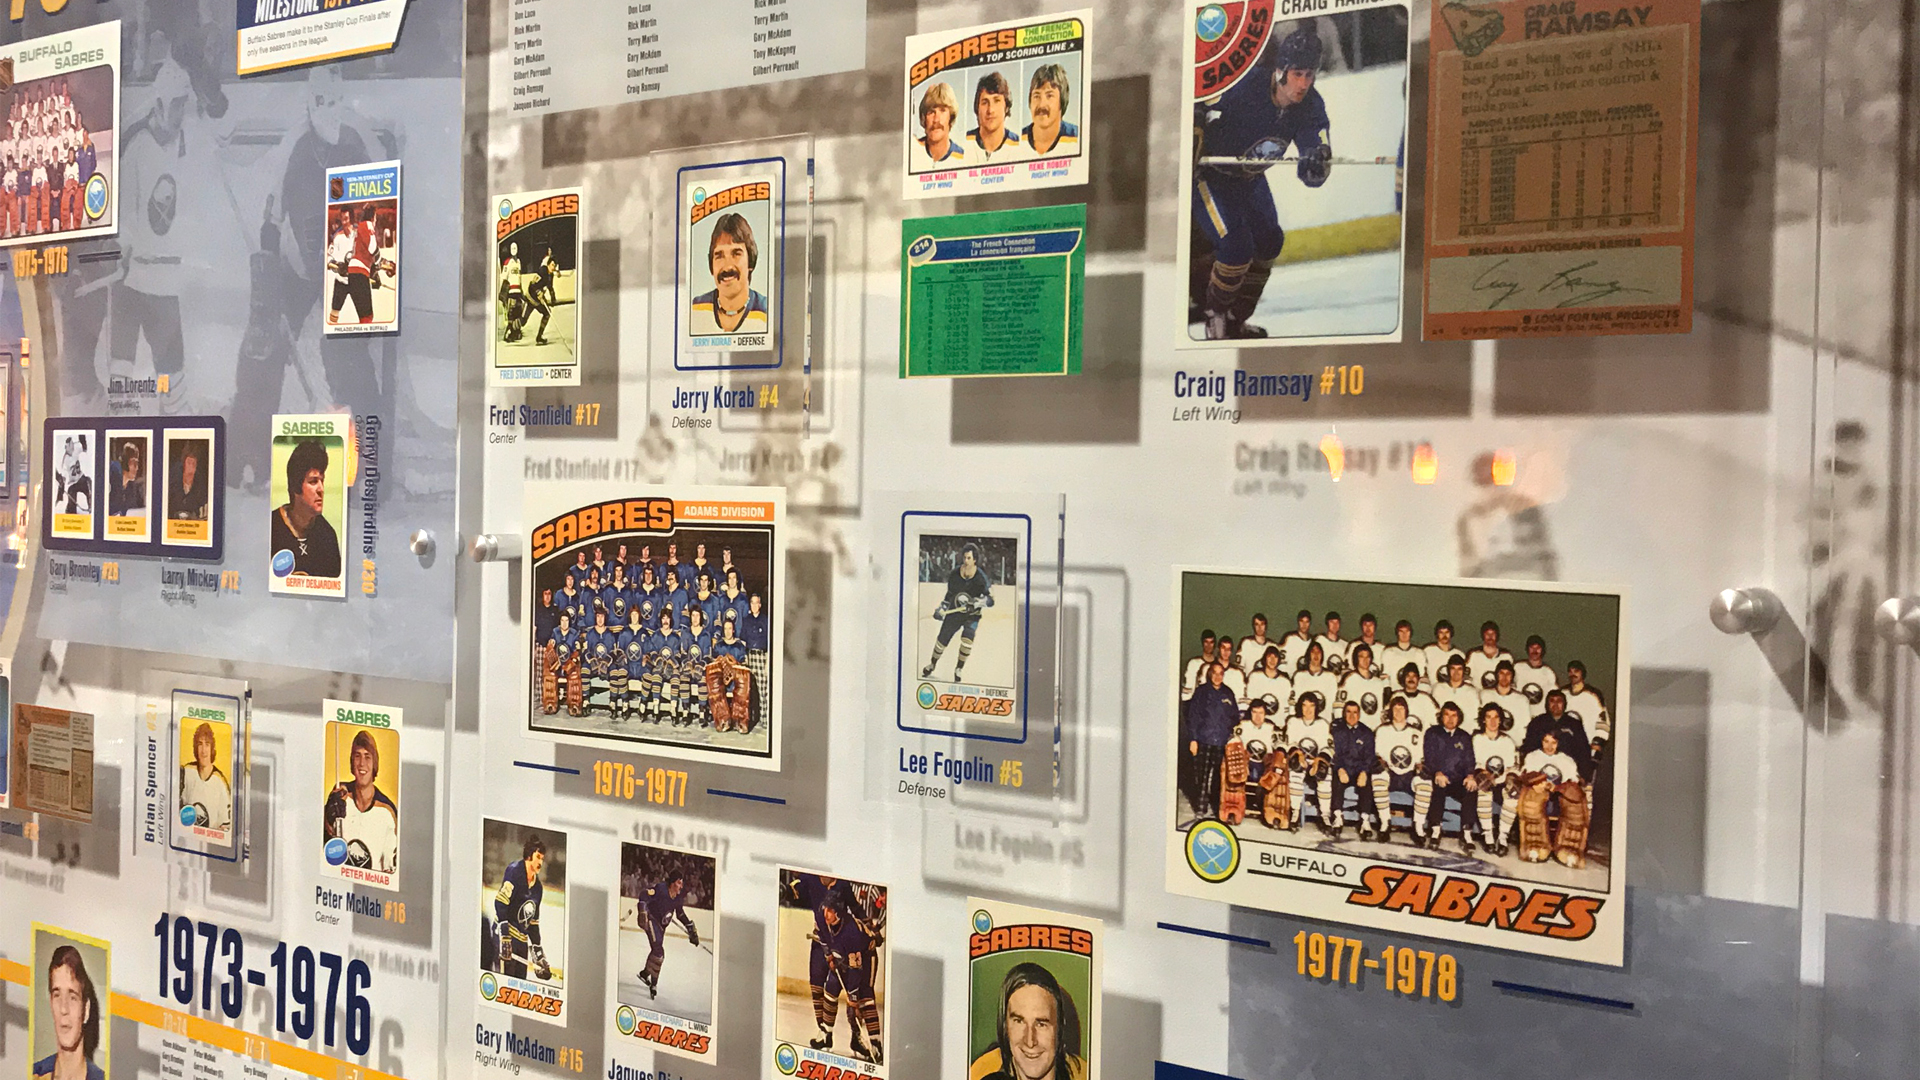 Buffalo Sabres Alumni Room exhibit design featuring player cards and photos